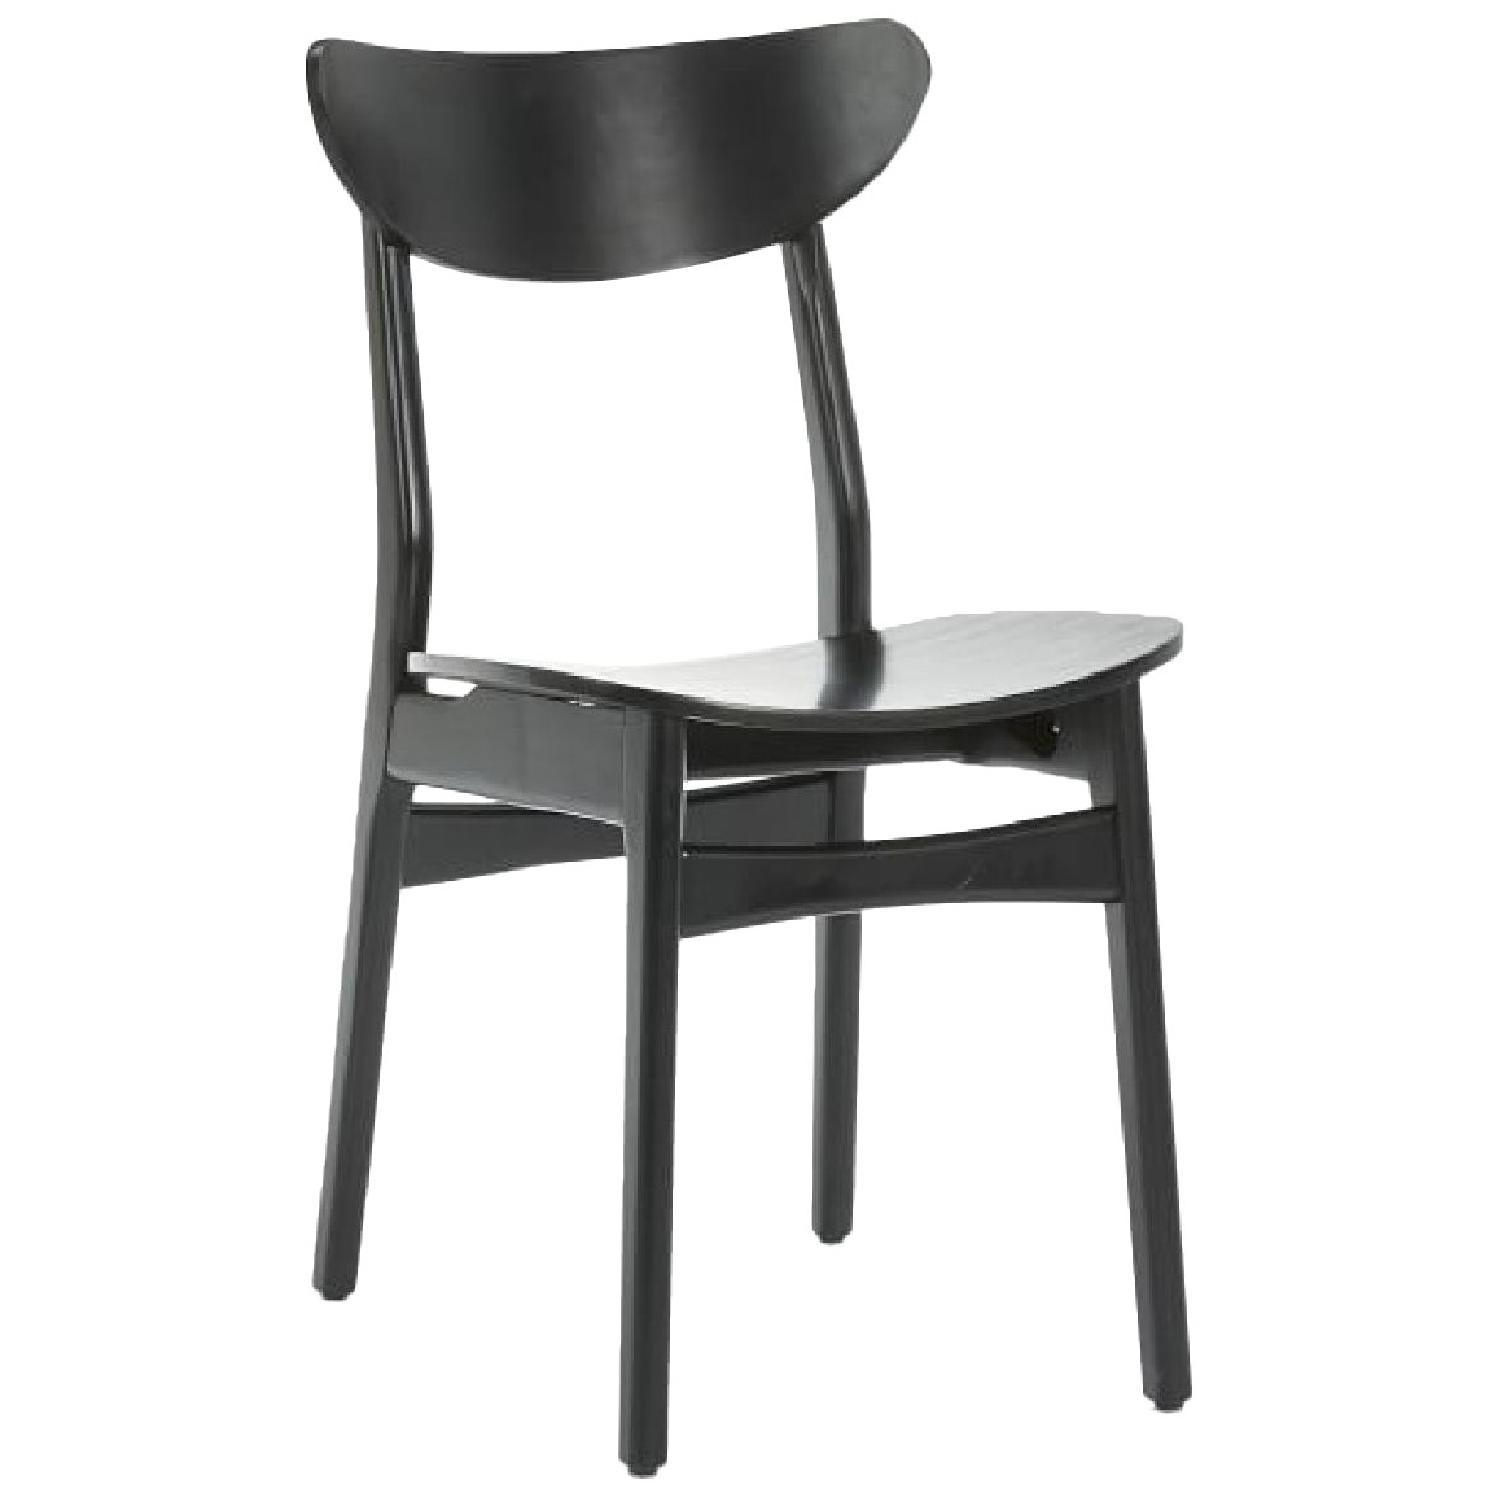 West Elm Classic Cafe Dining Chair in Black Lacquer - image-0